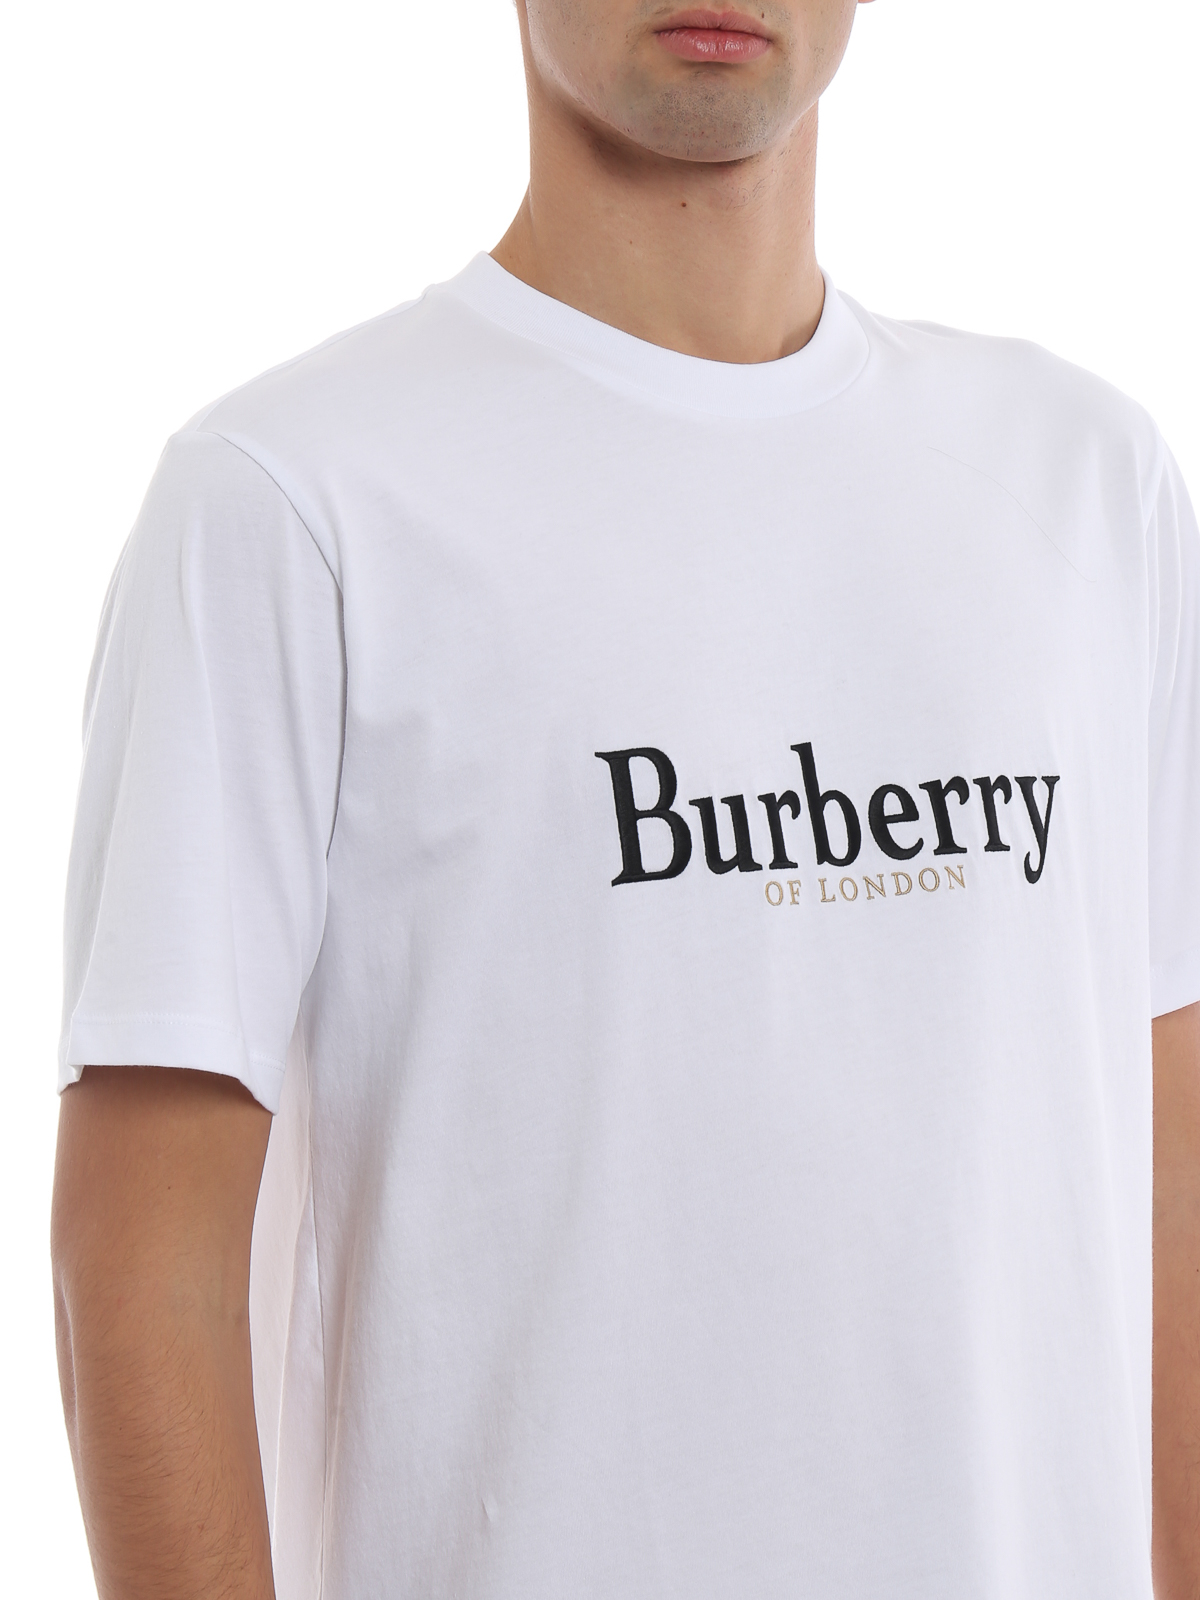 52a86f1a Burberry - Lopori white cotton T-shirt with archive logo - t-shirts ...